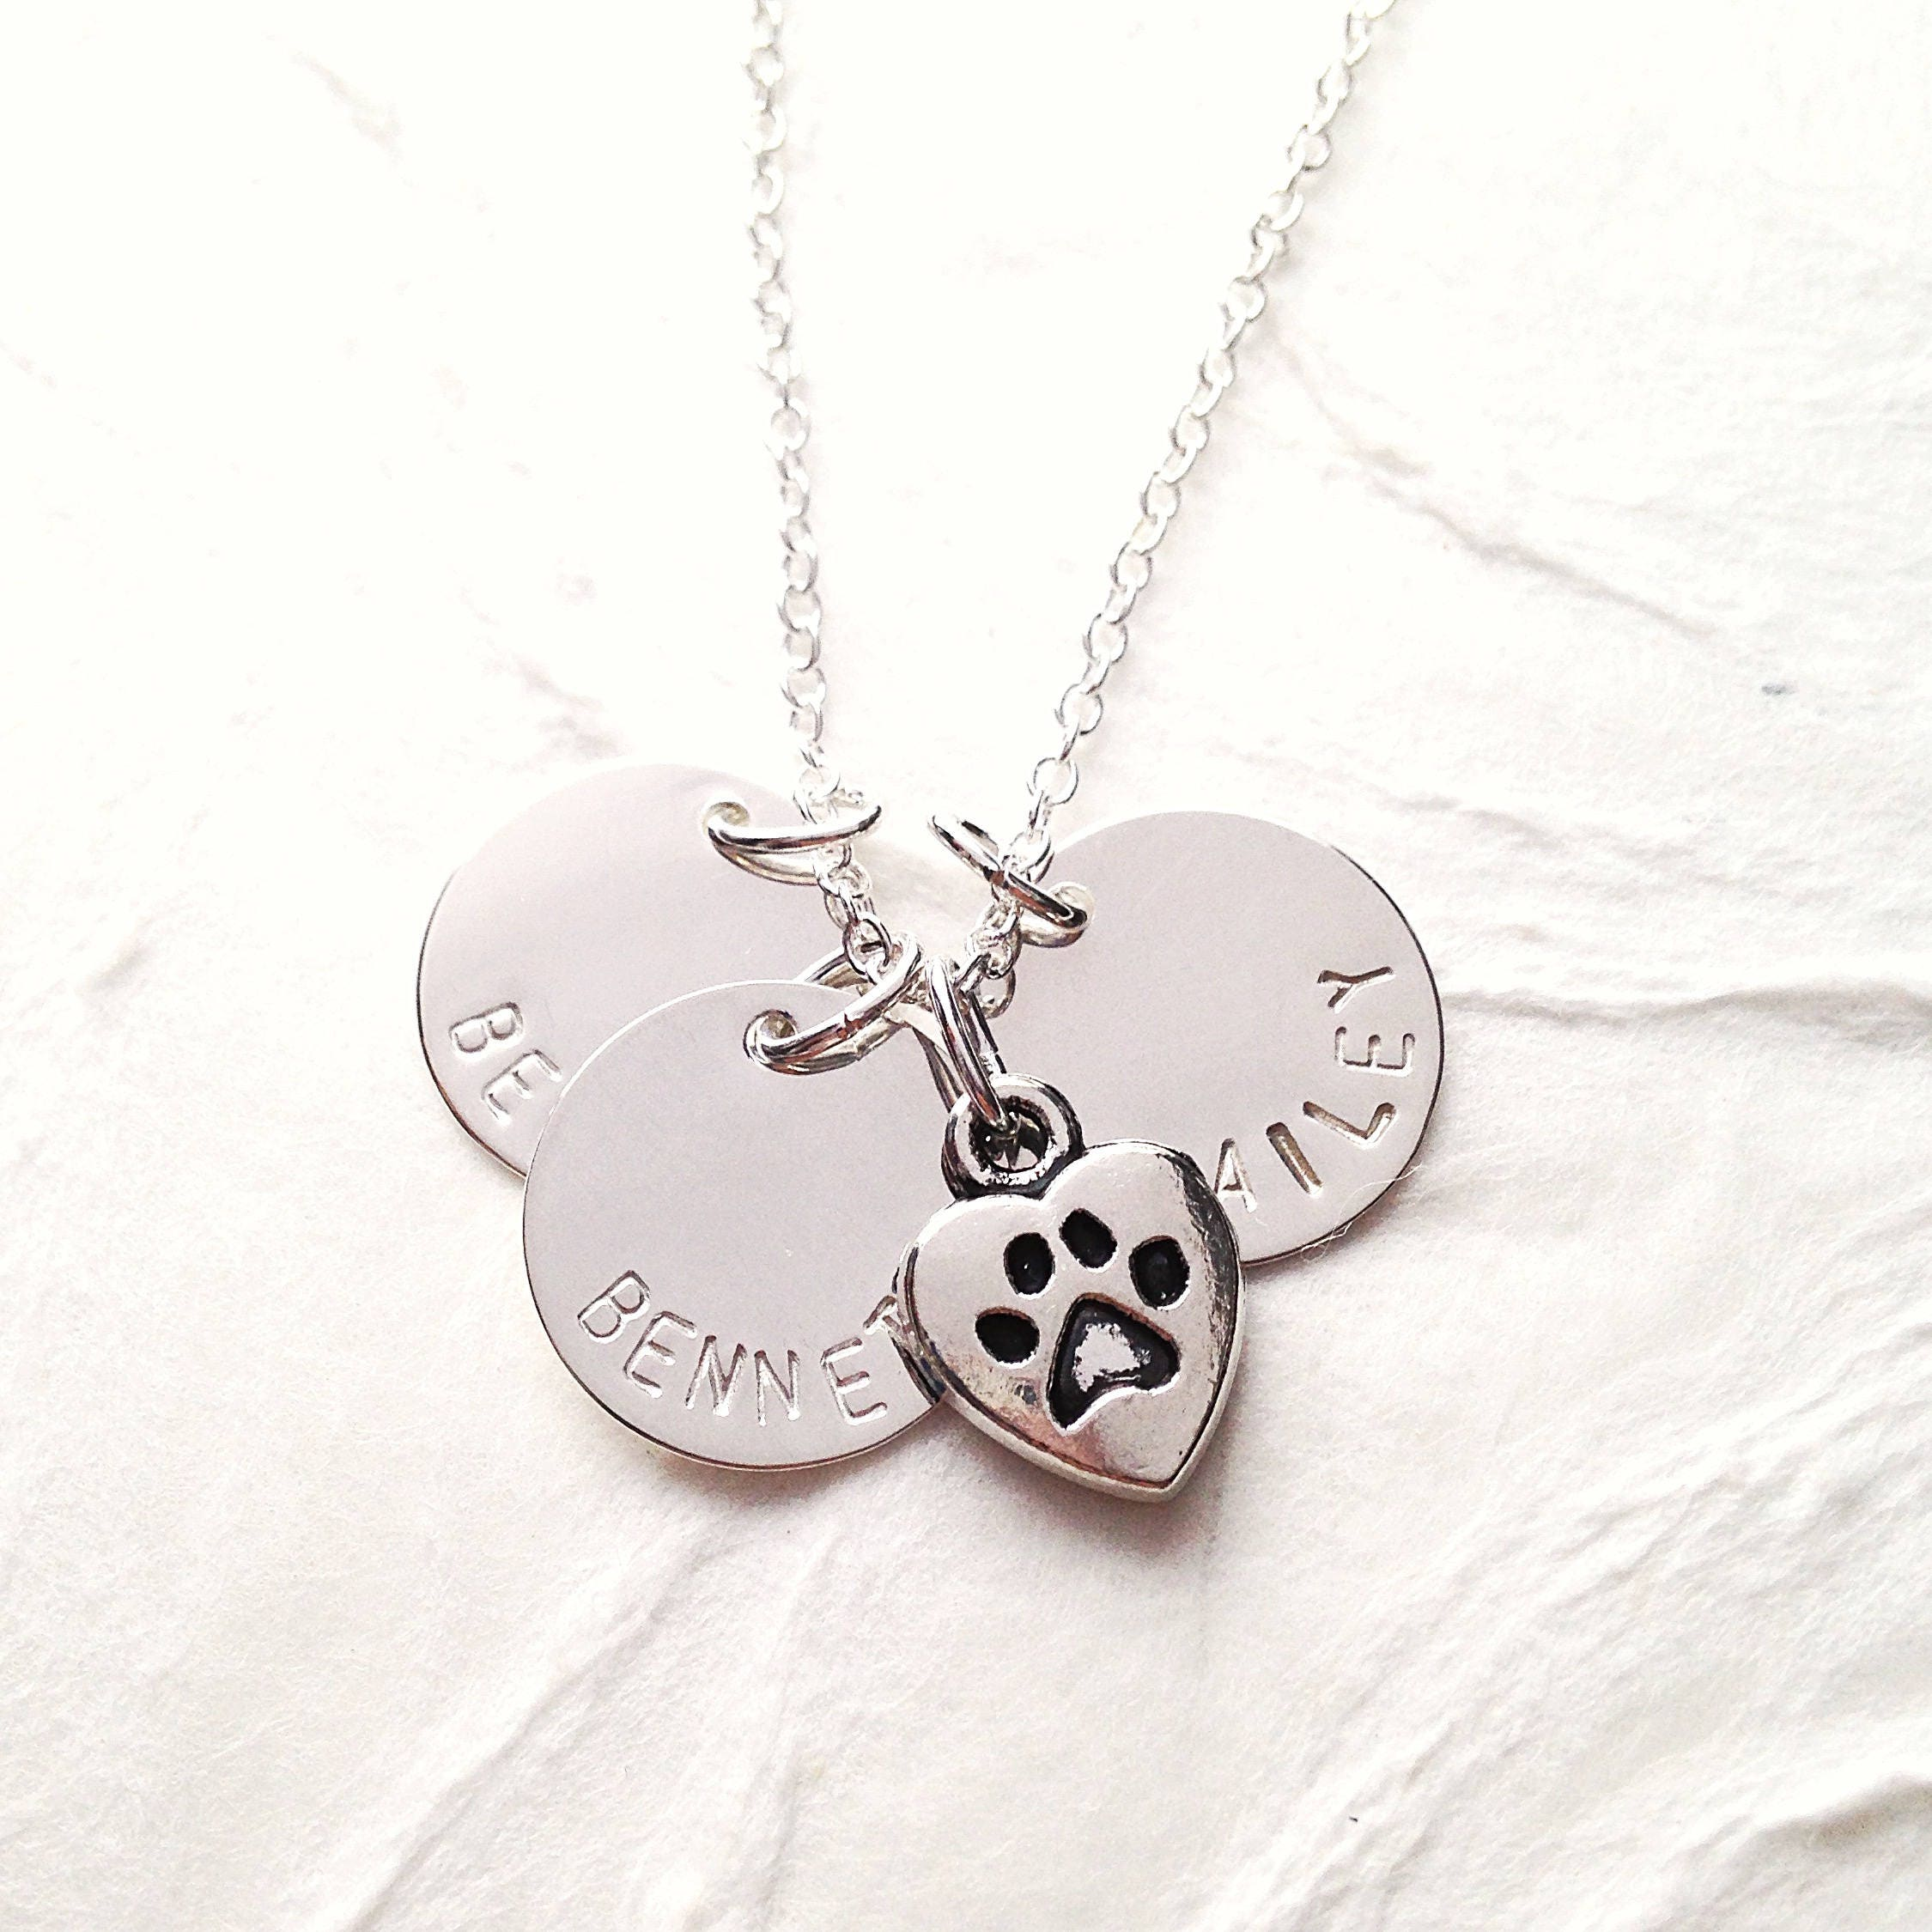 dog lovers products lover paw print vila for necklace rosa